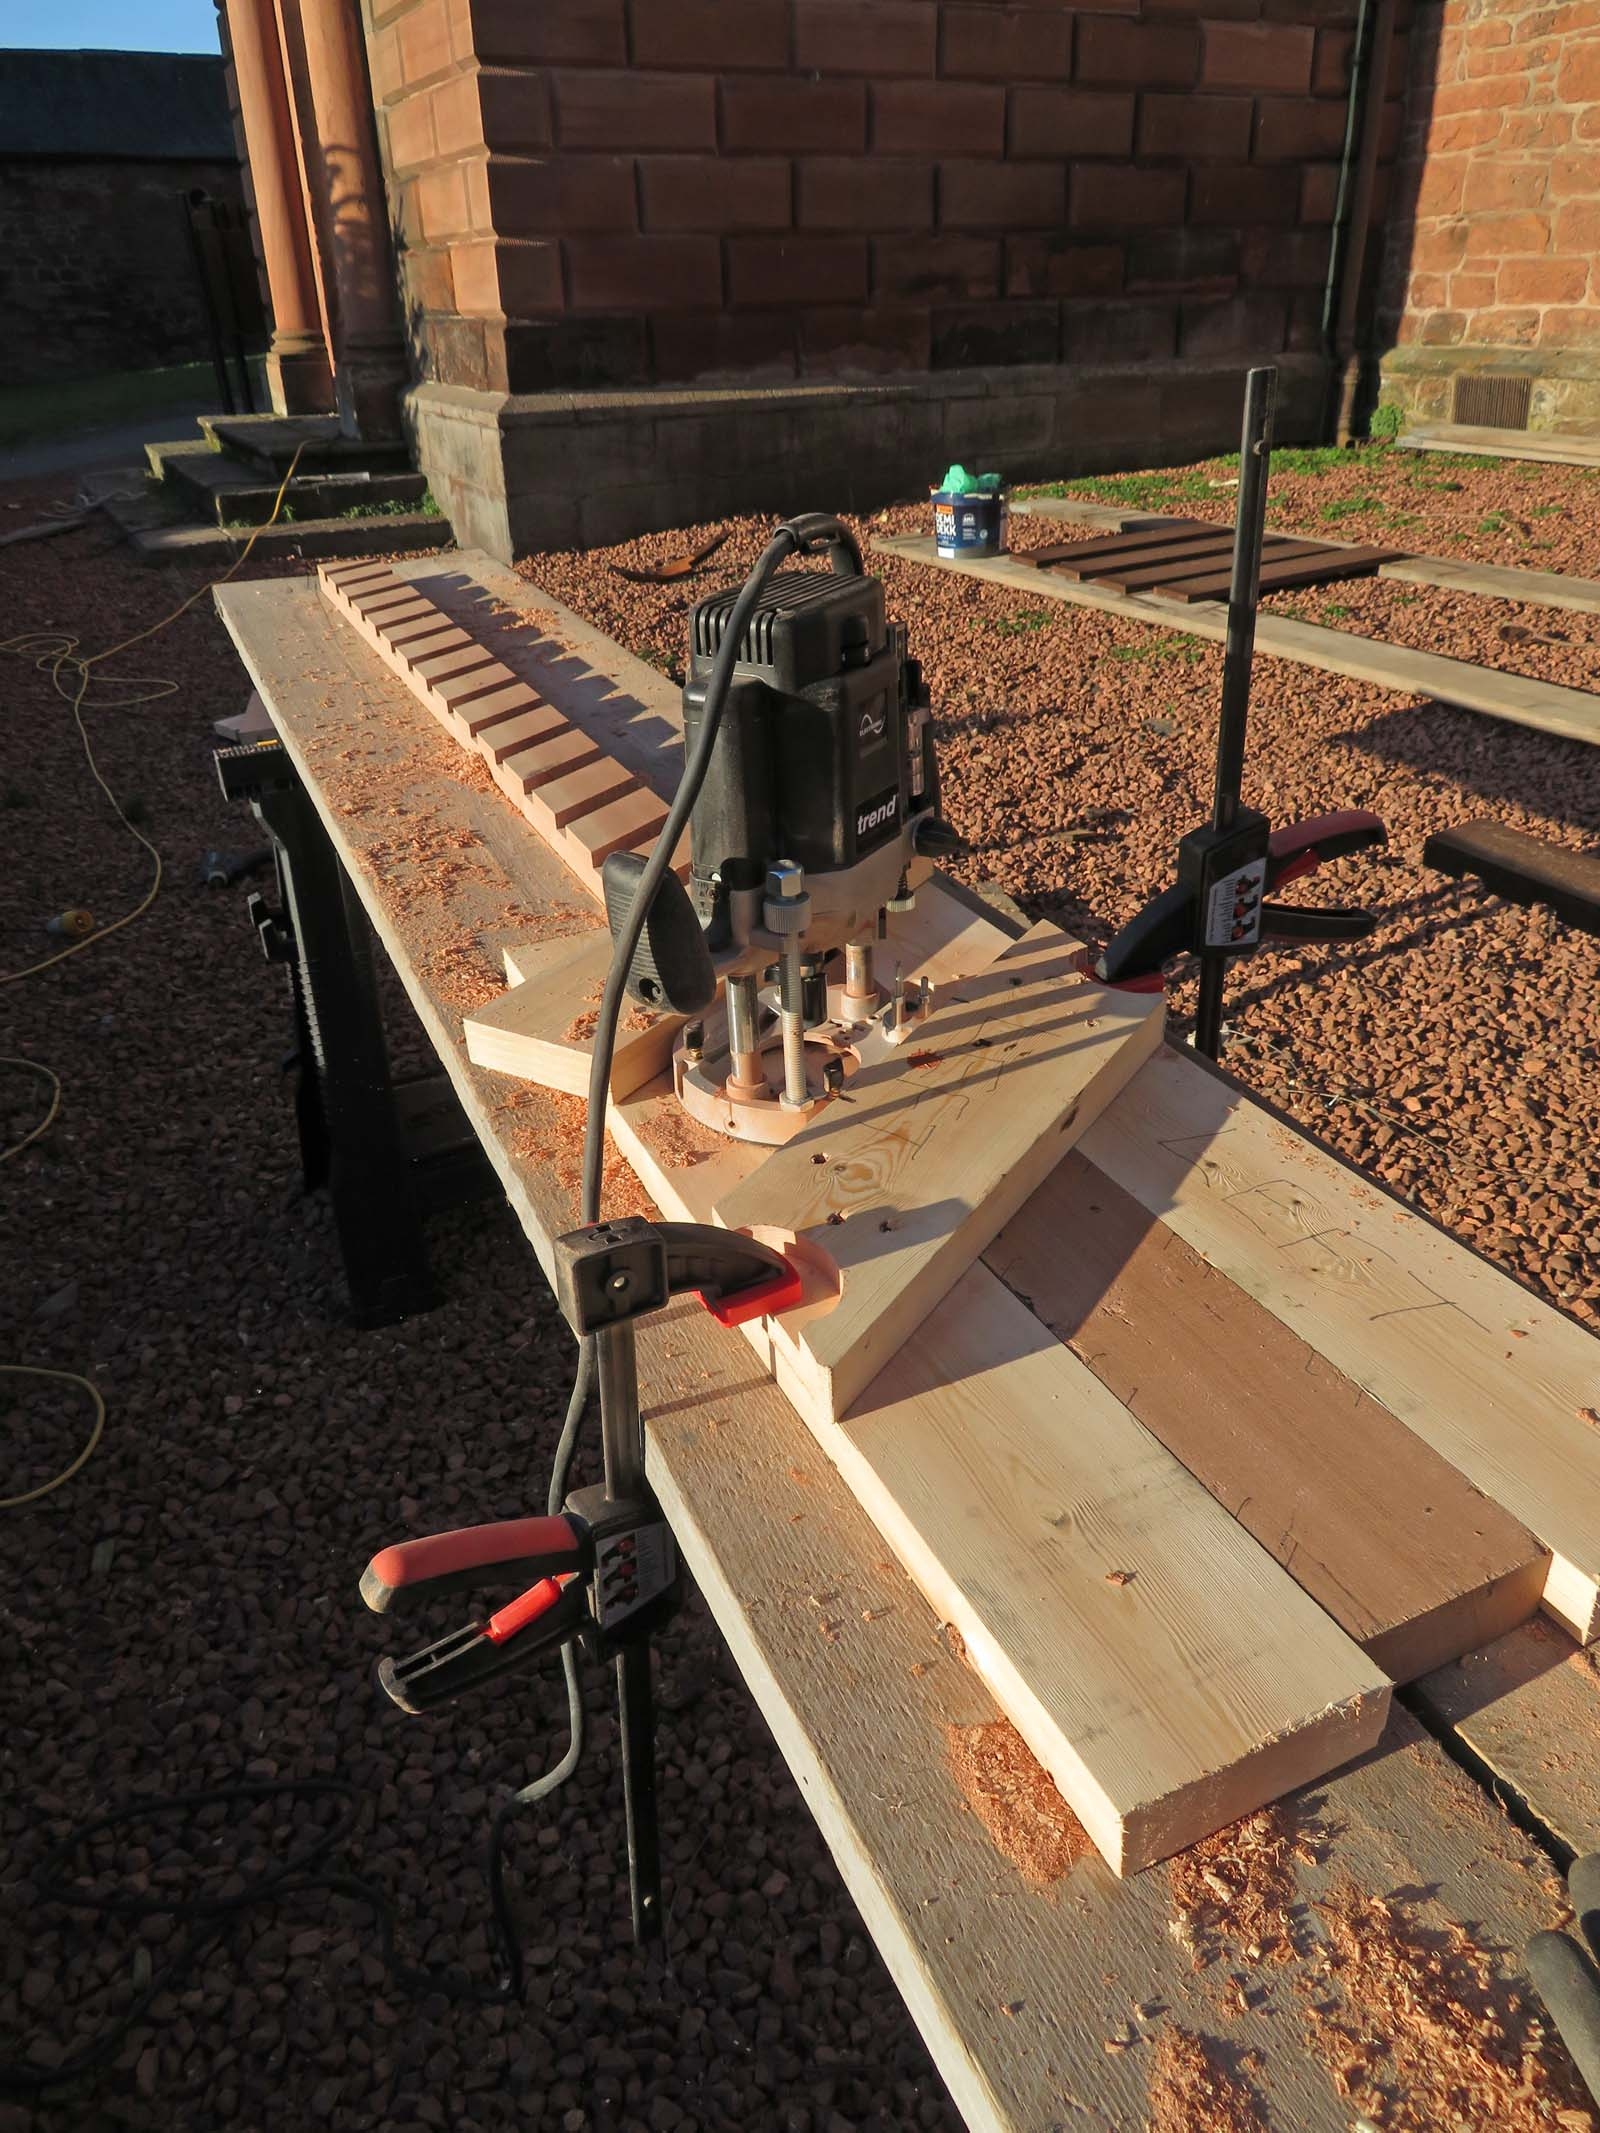 using router to cut louvre slats into timbers